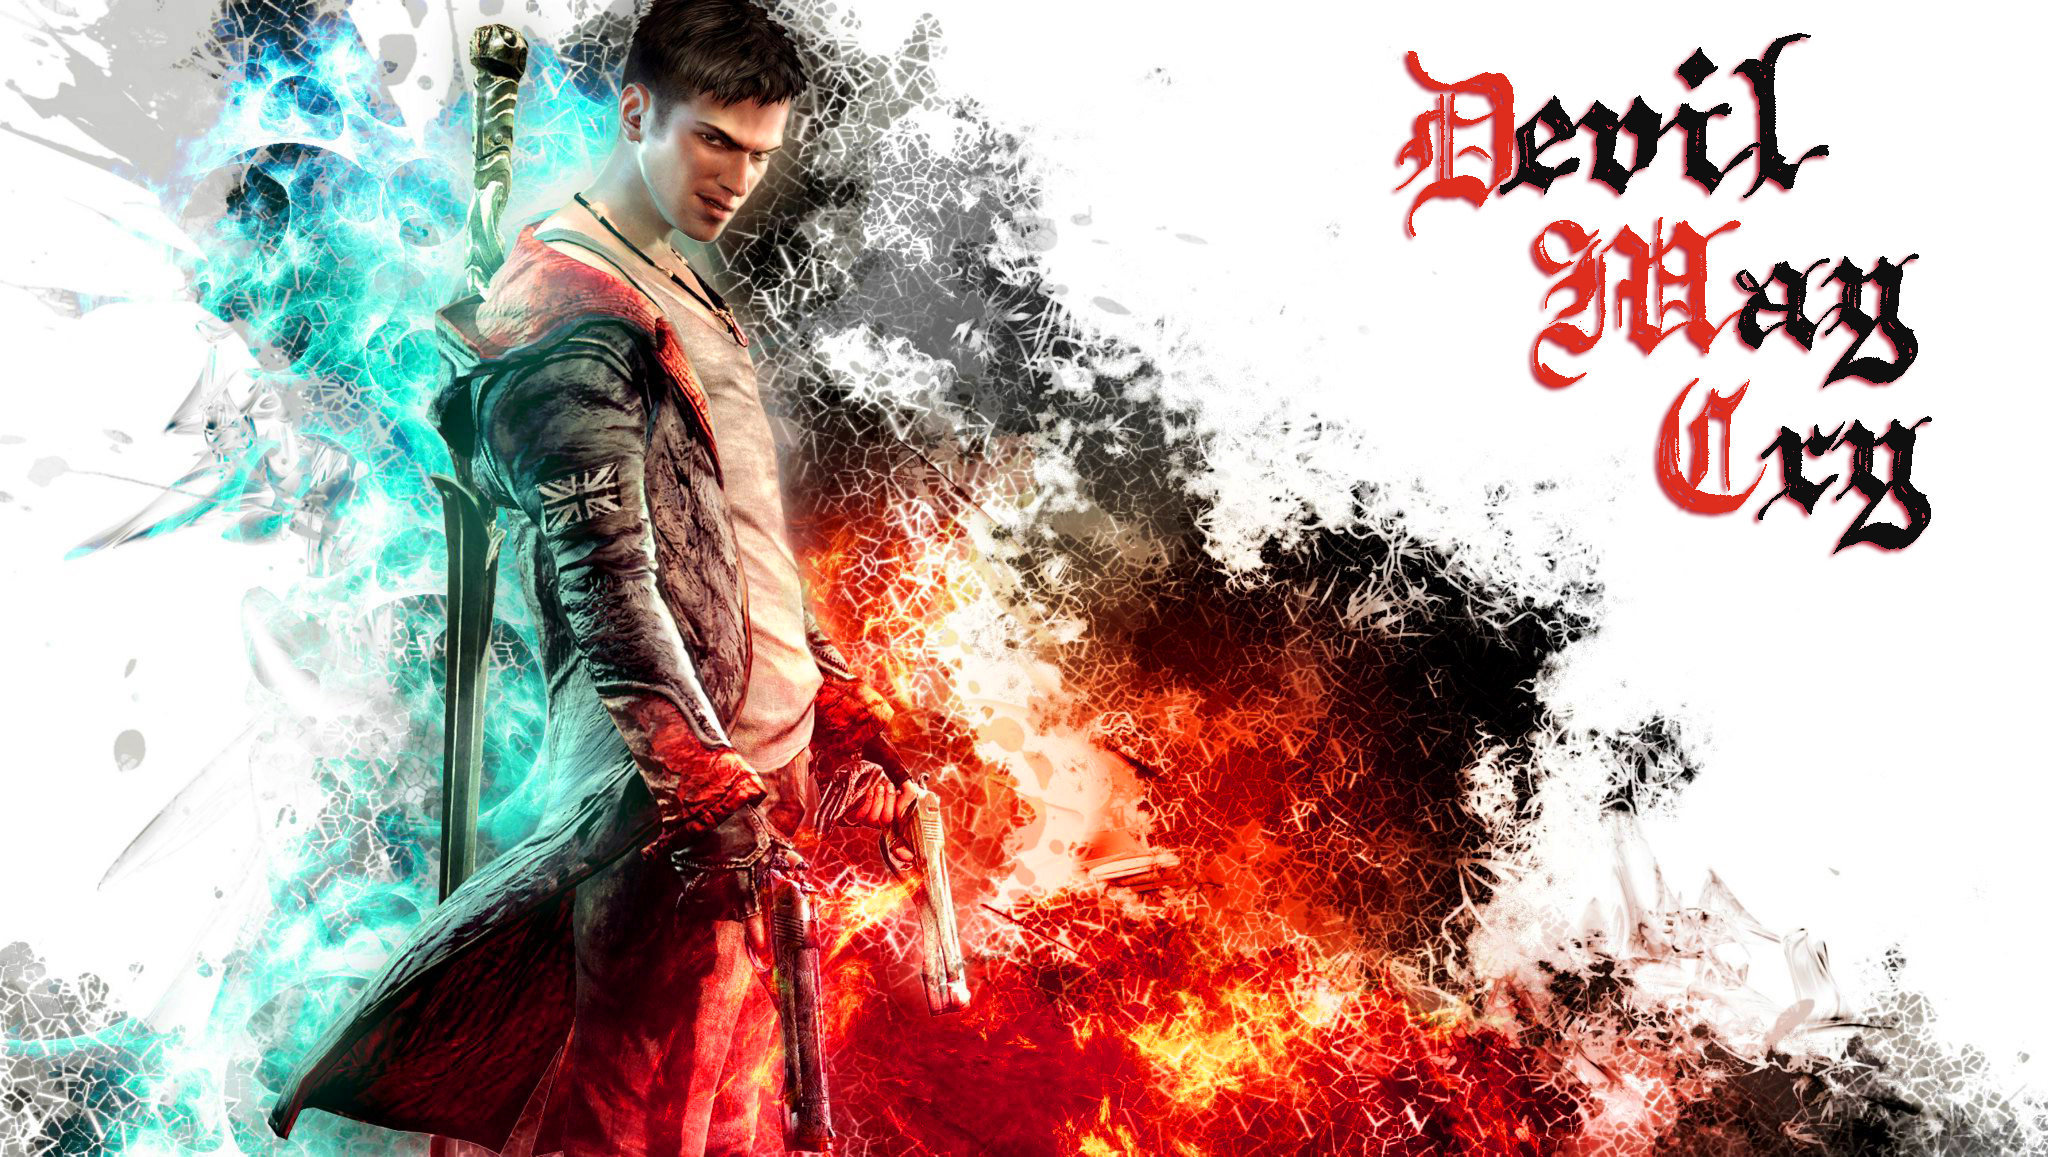 Devil may cry wallpaper hd - Devil may cry hd pics ...